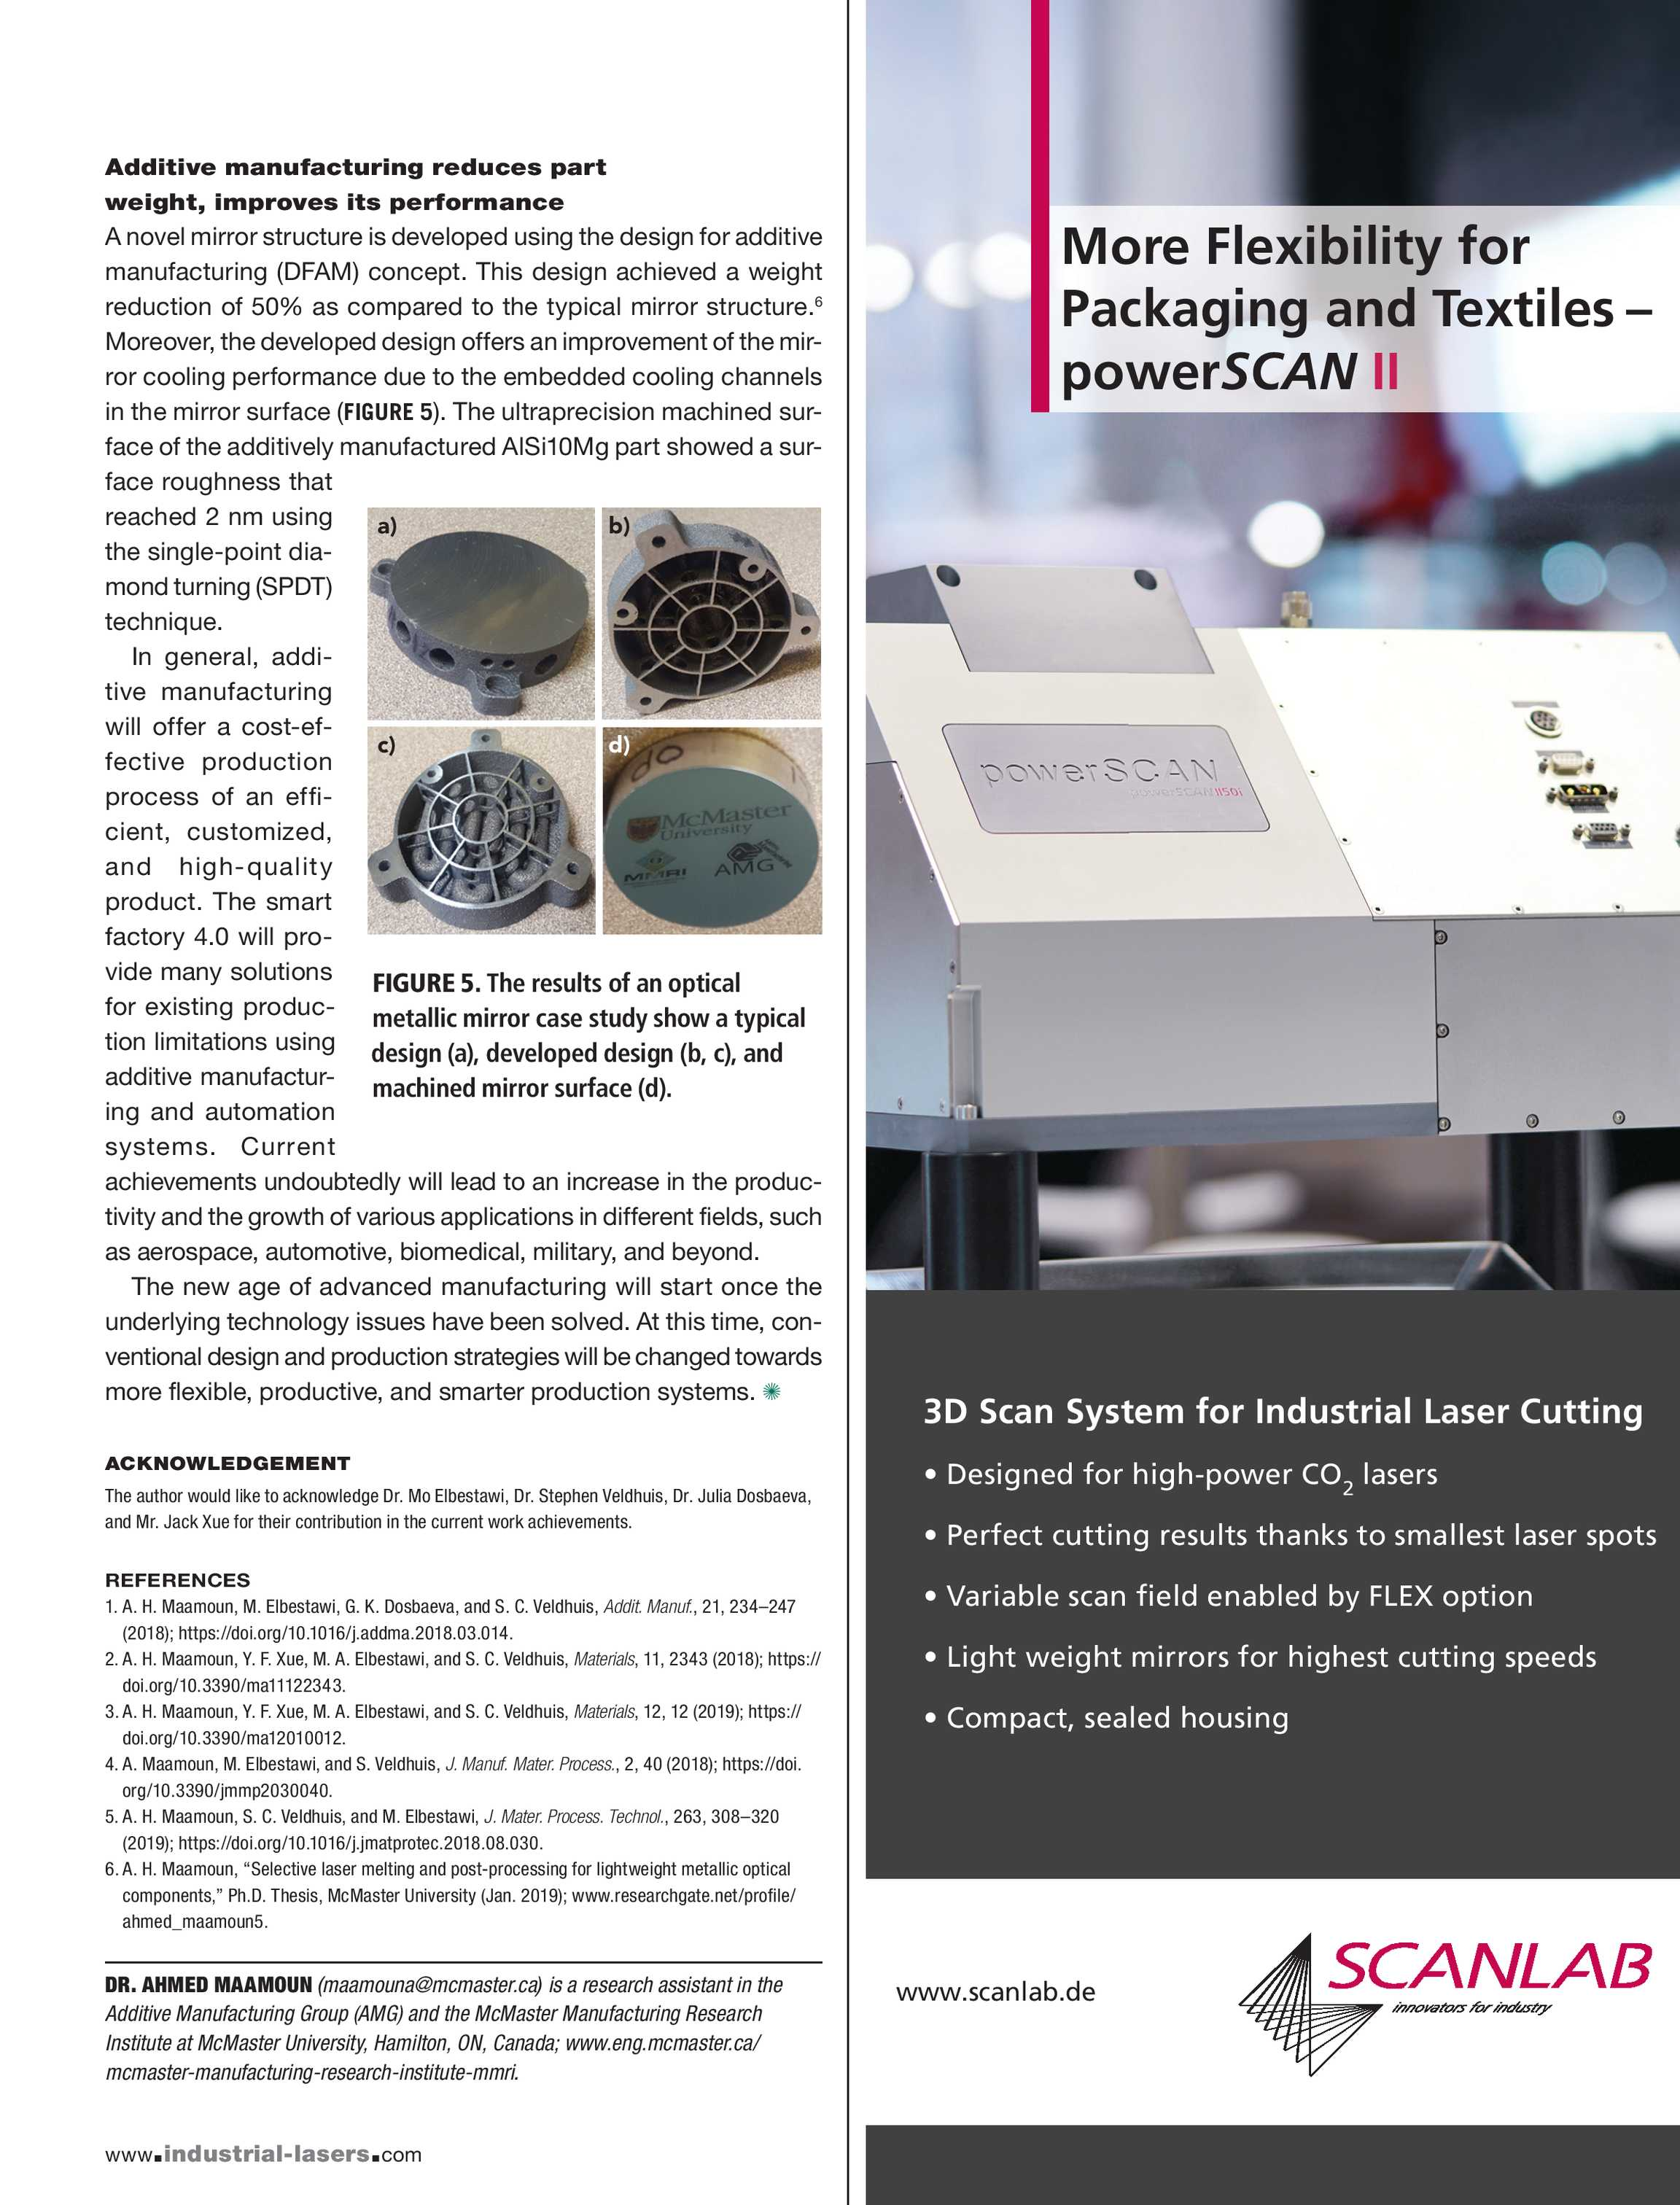 Industrial Laser Solutions - March/April 2019 - page 17